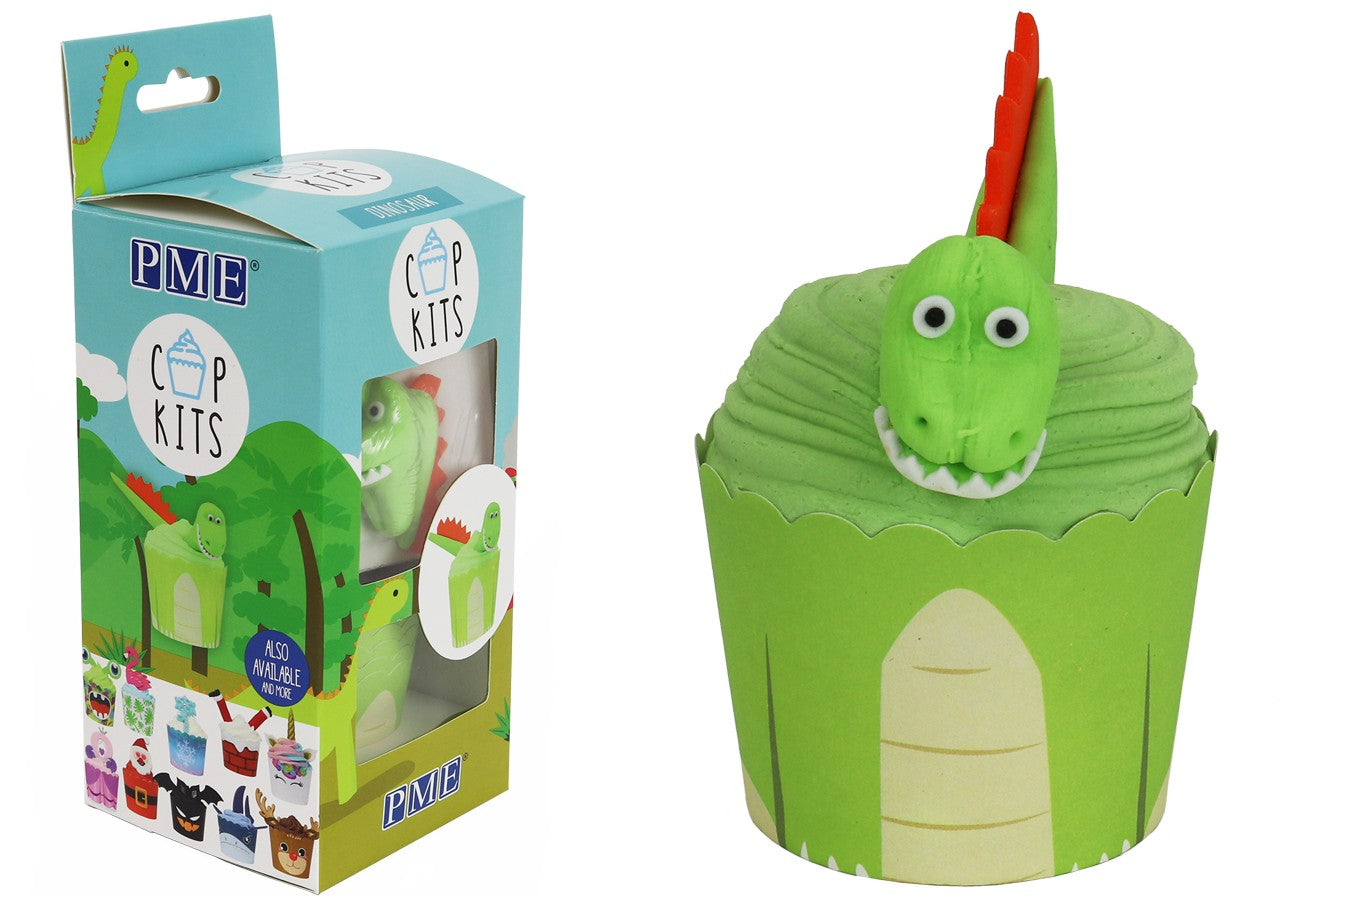 PME : CupKit - Dinosaur Cupcake Decorating Kit